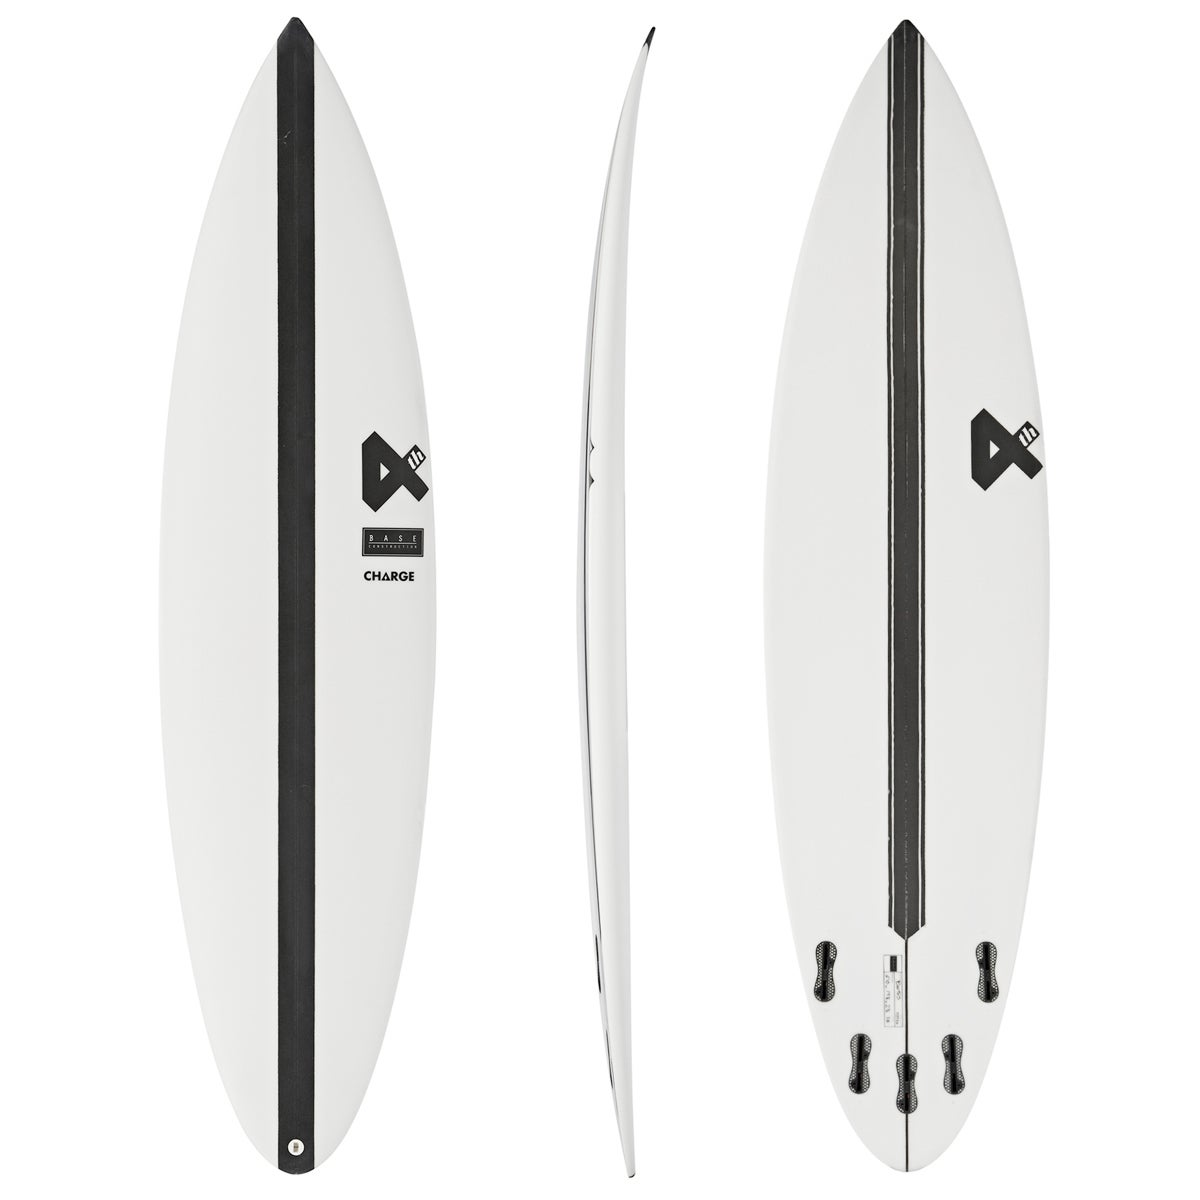 Fourth Surfboards Charge 2.0 Base Construction FCS II 5 Fin , Surfboard - White/ Black